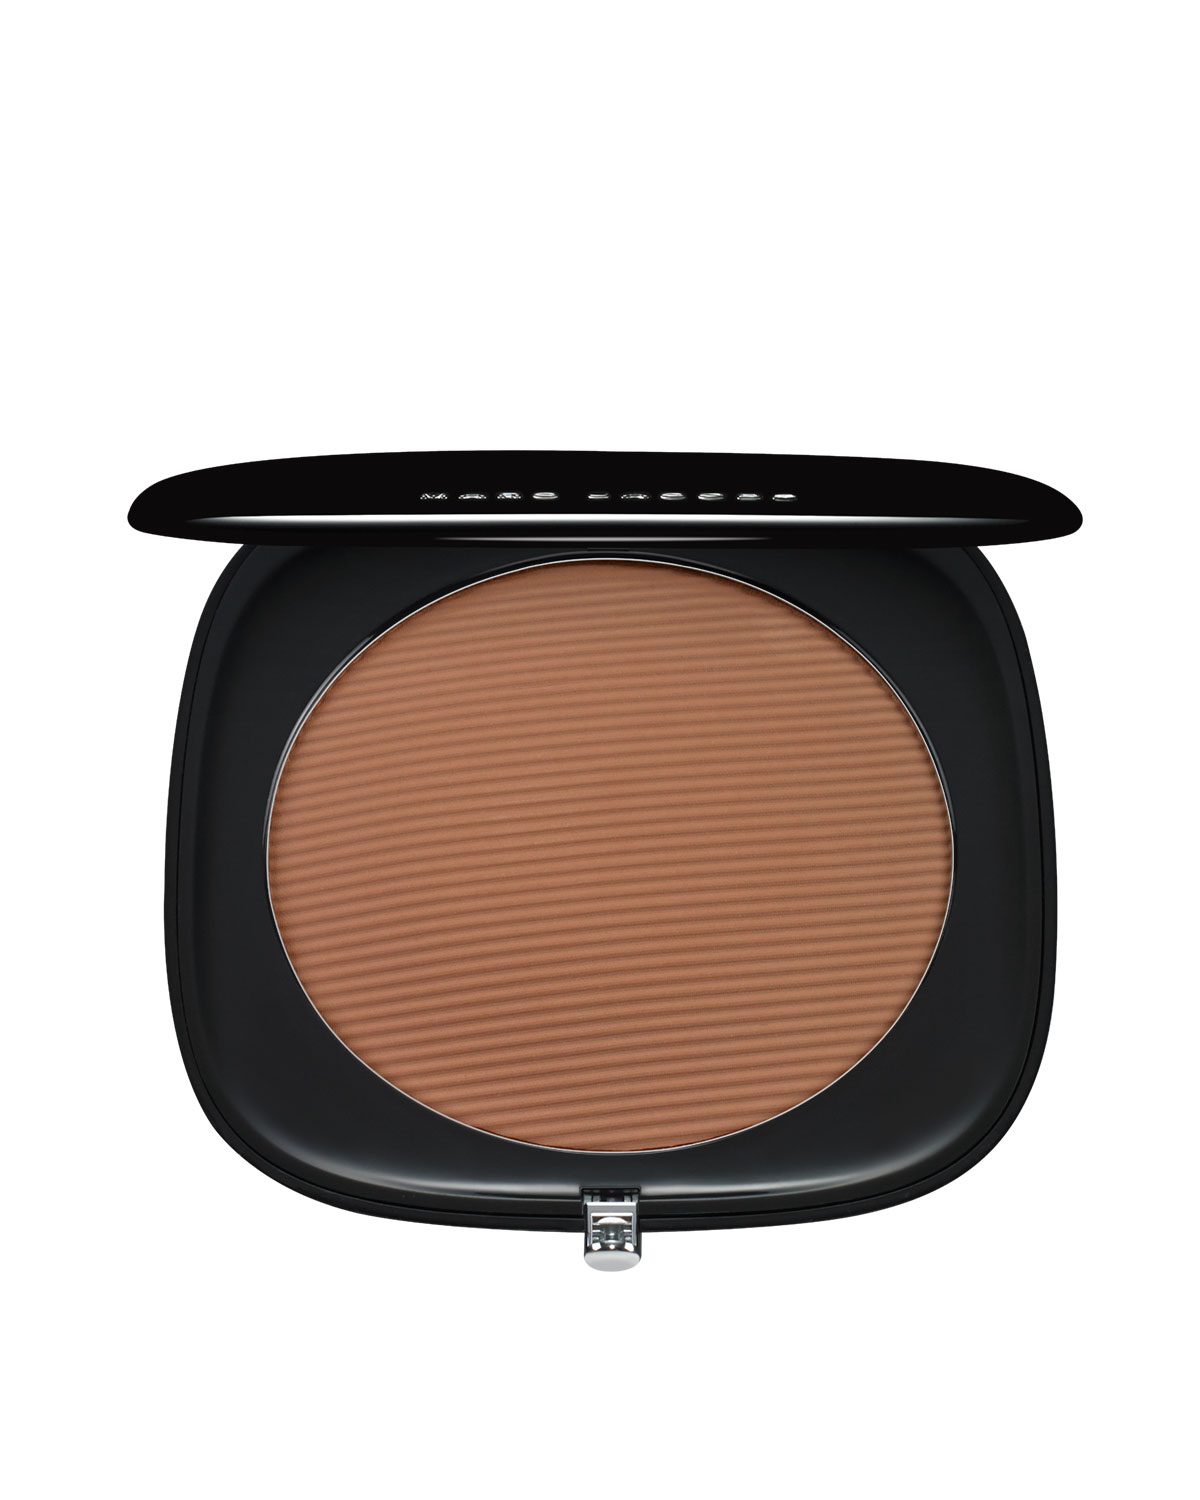 O!Mega Bronze Perfect Tan Compact, 102 Tantric - Marc Jacobs Beauty